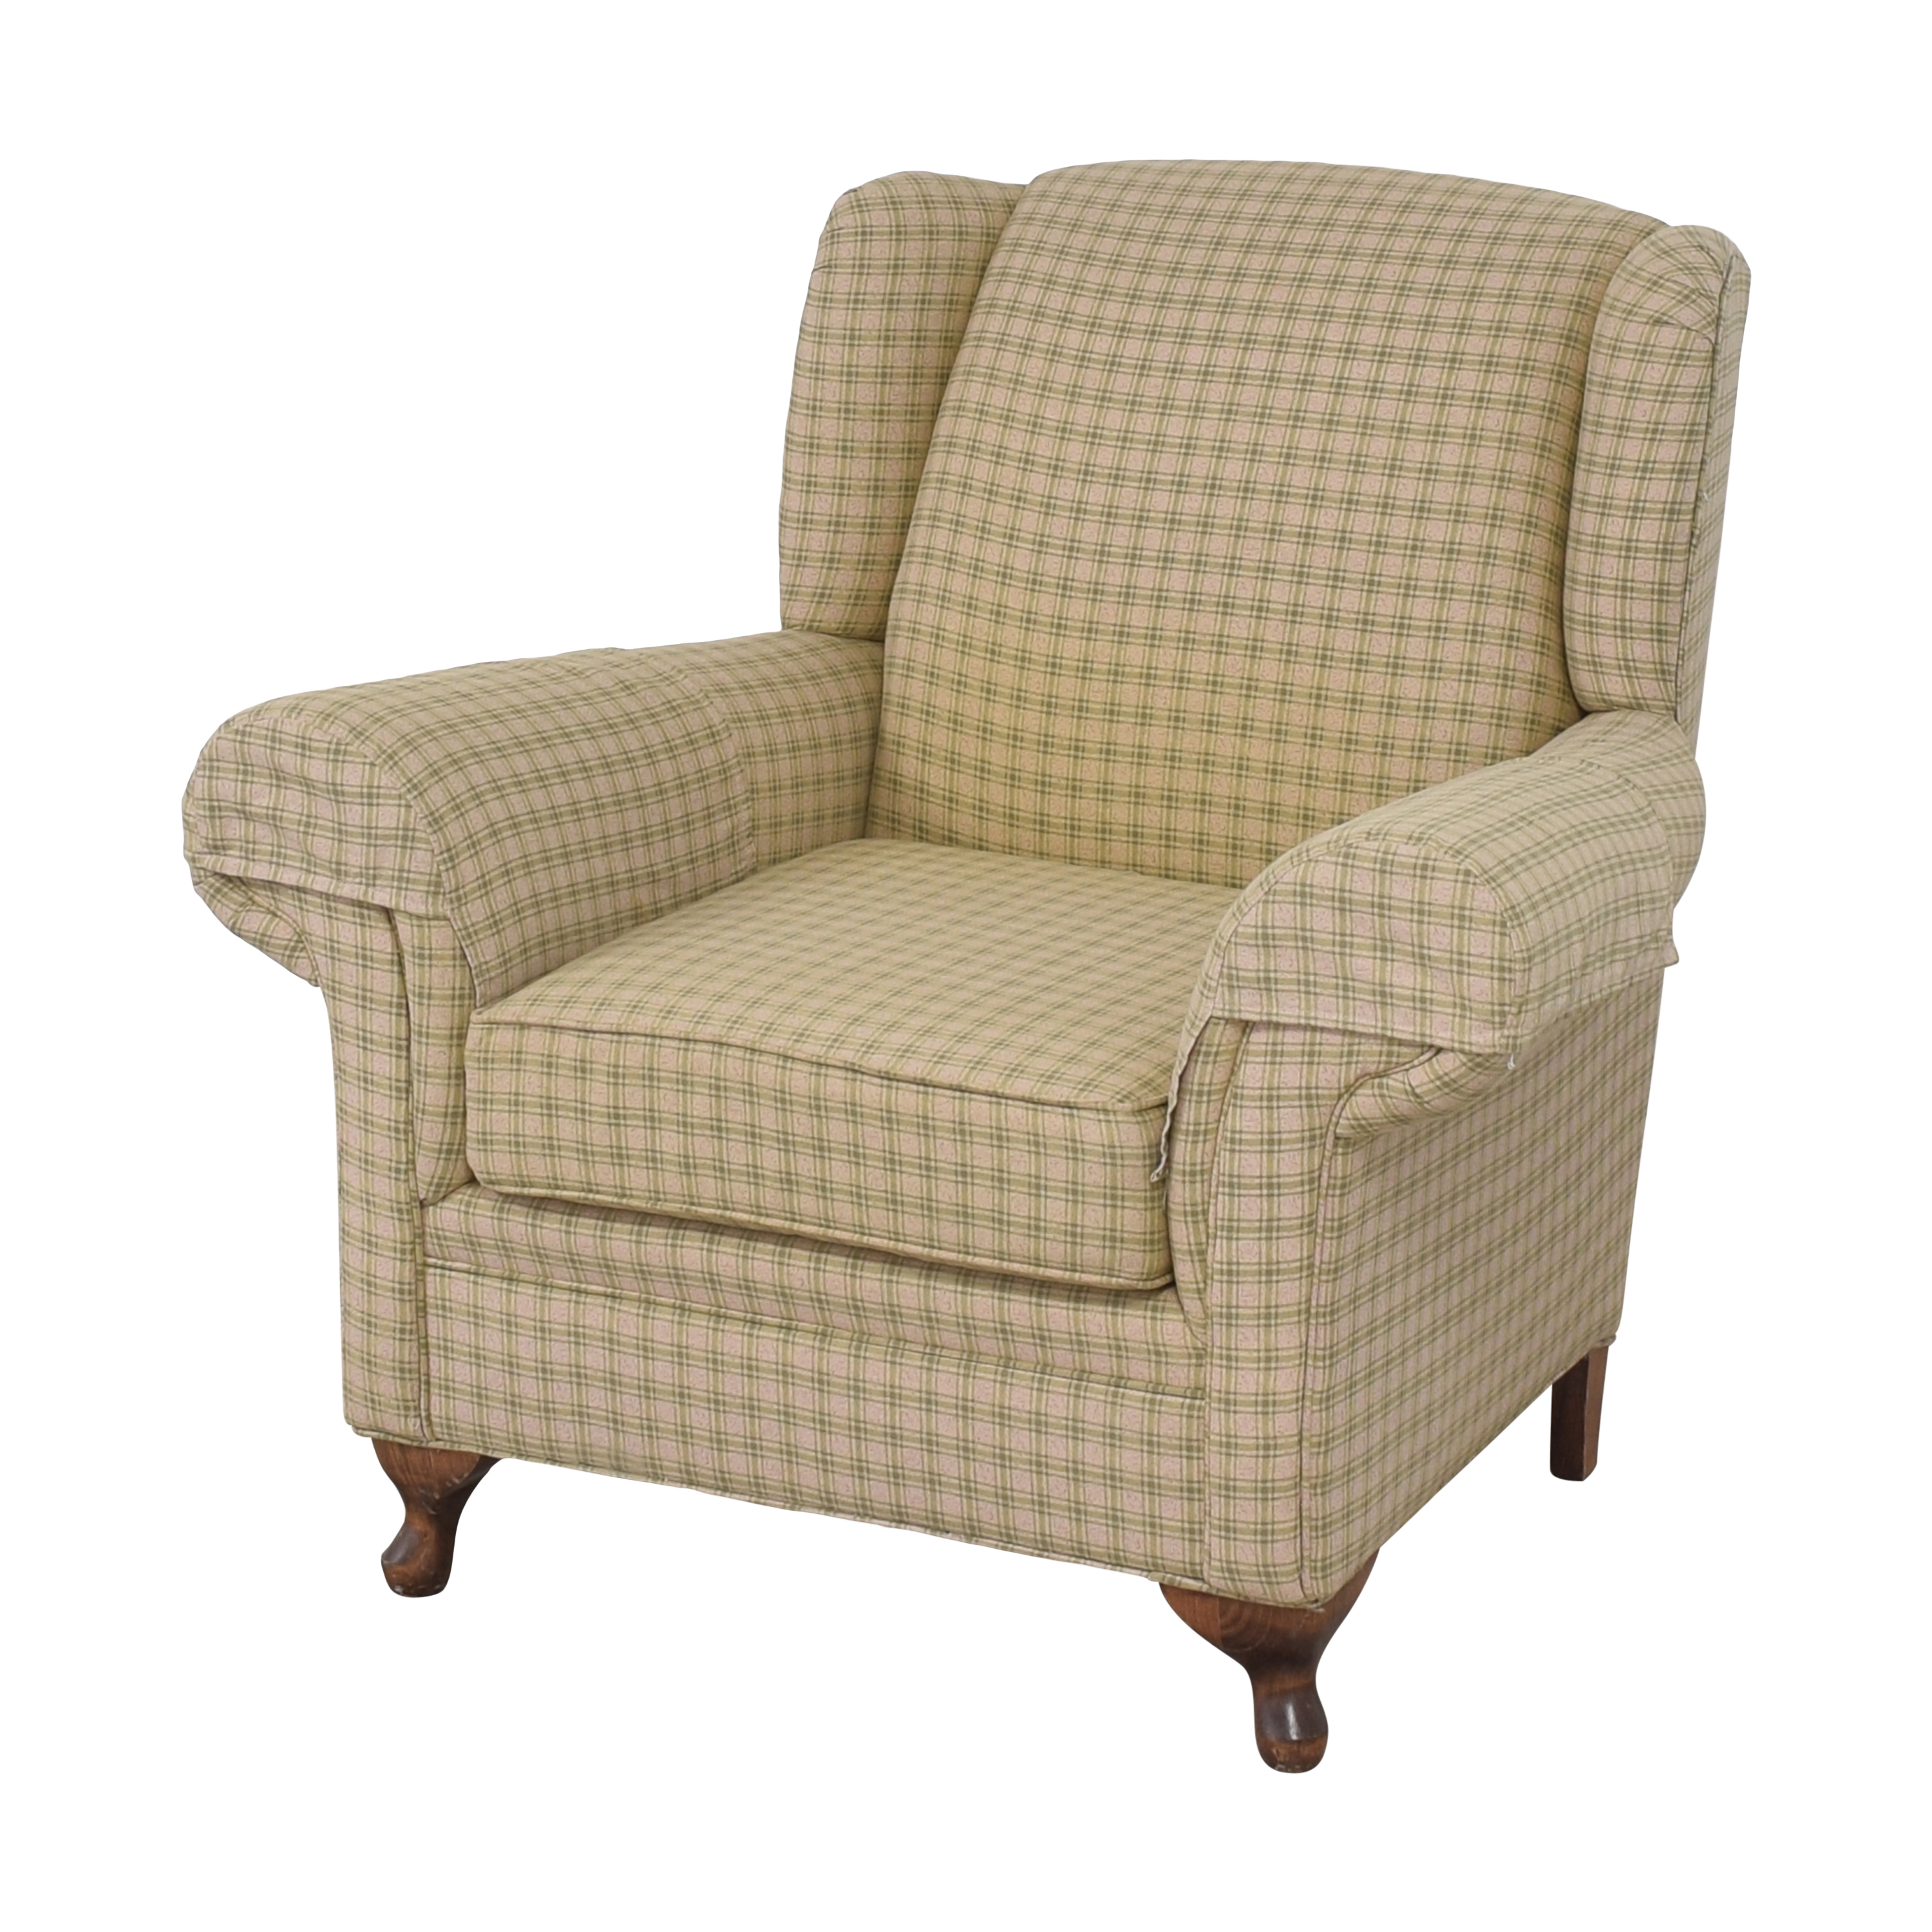 buy  Roll Arm Chair with Ottoman online